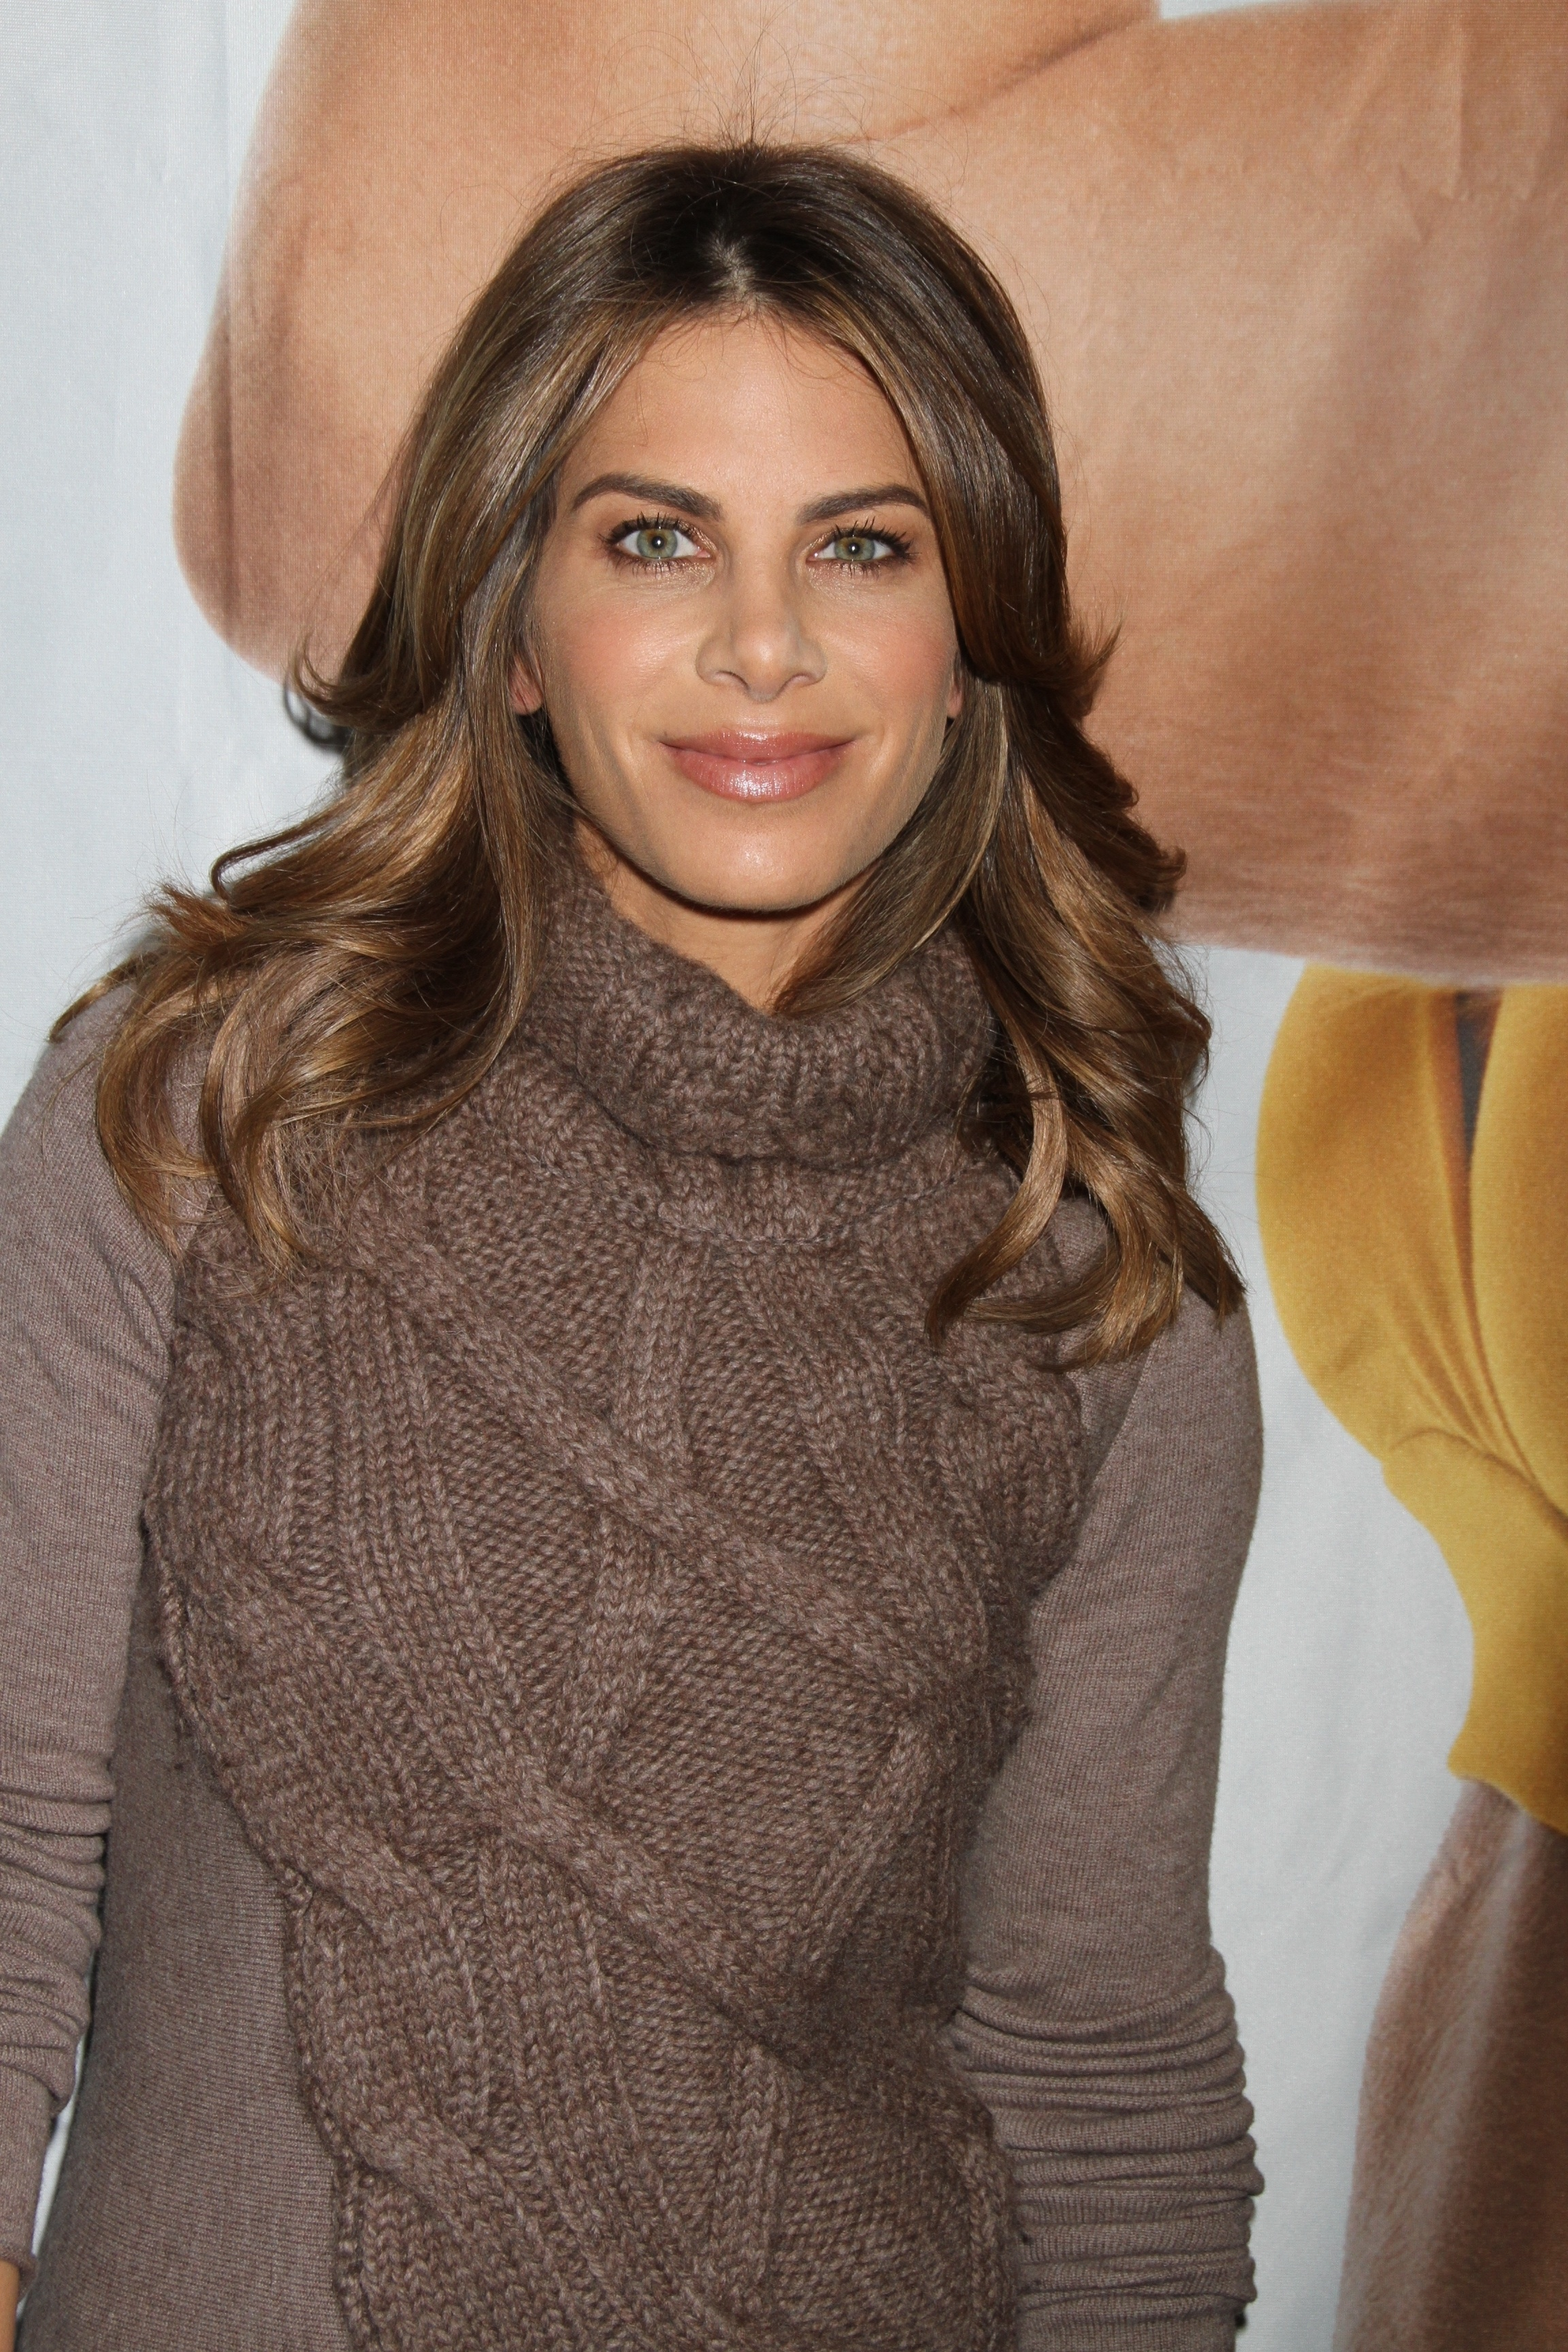 Stranger breaks into Jillian Michaels home, steals her car